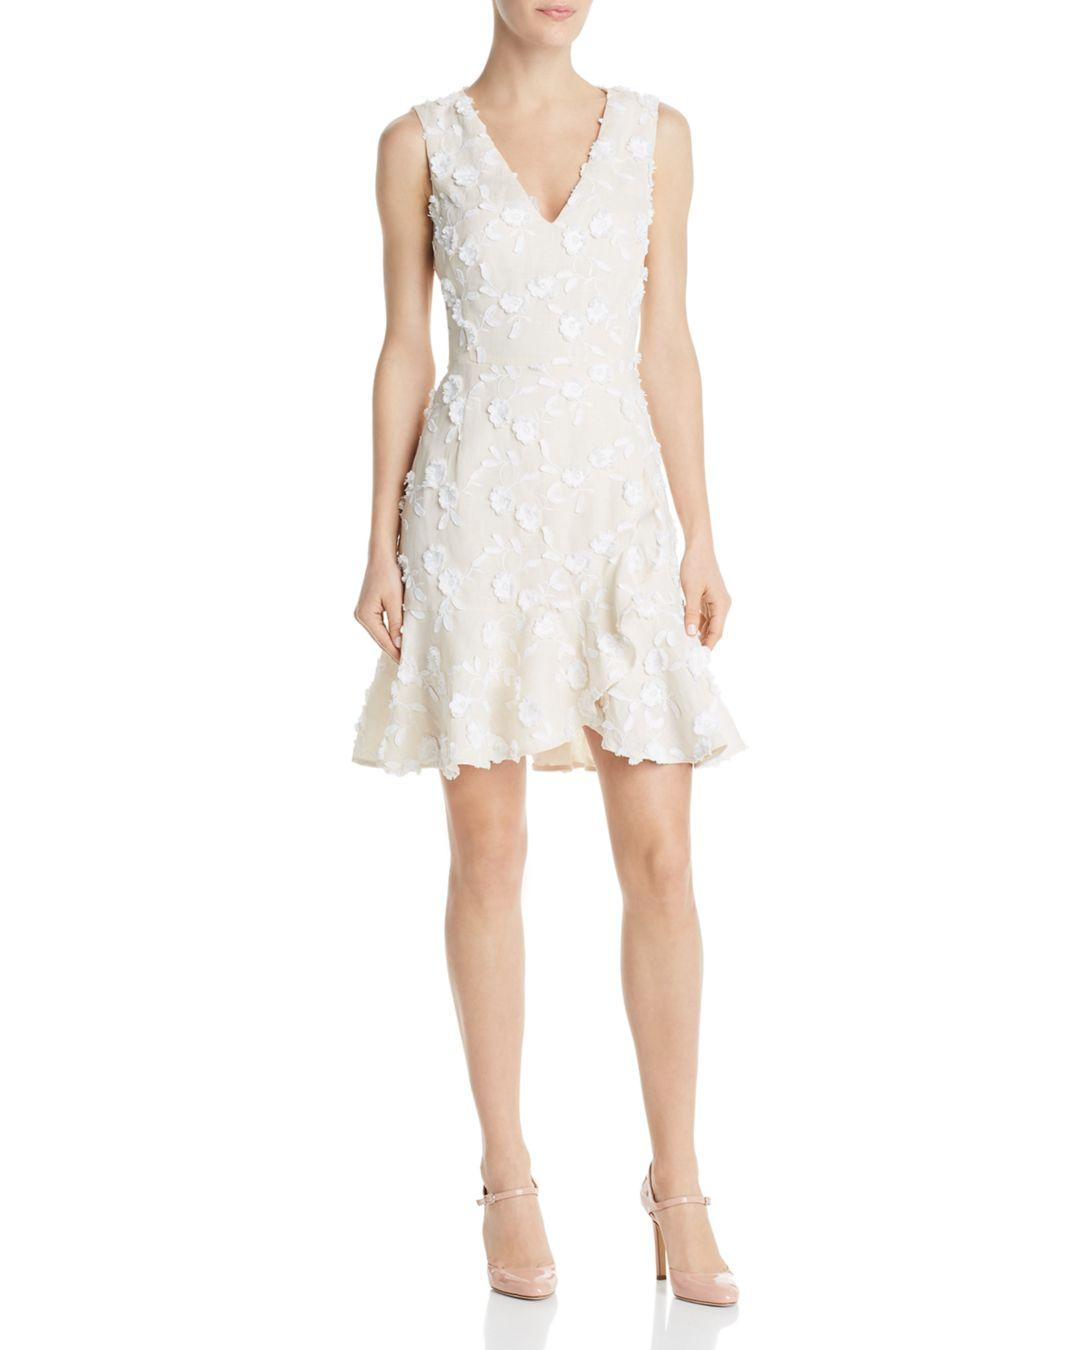 71f3e42d75a ... Nicola Floral - Embroidered Dress - Lyst. View fullscreen